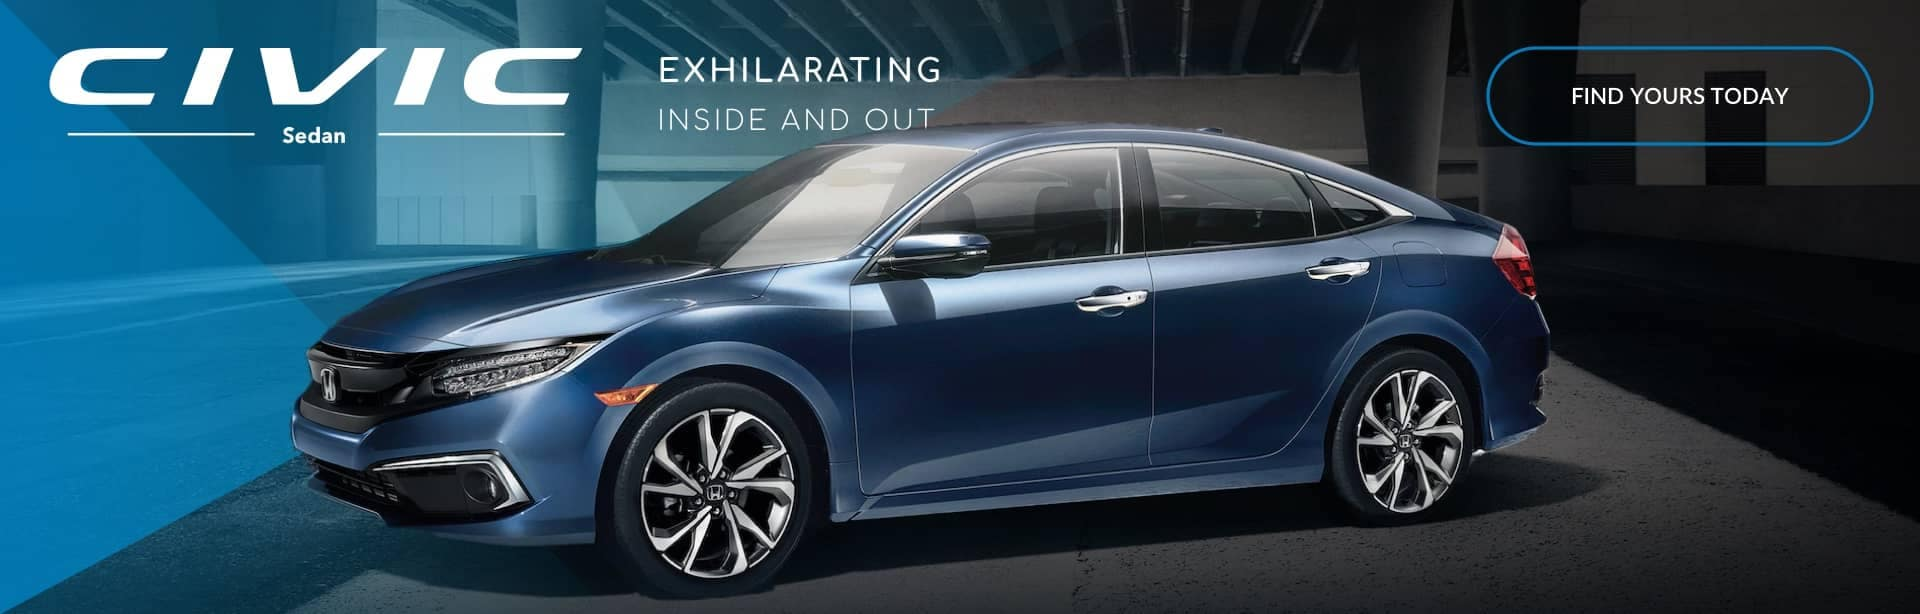 Honda Civic sedan exhilarating inside and out